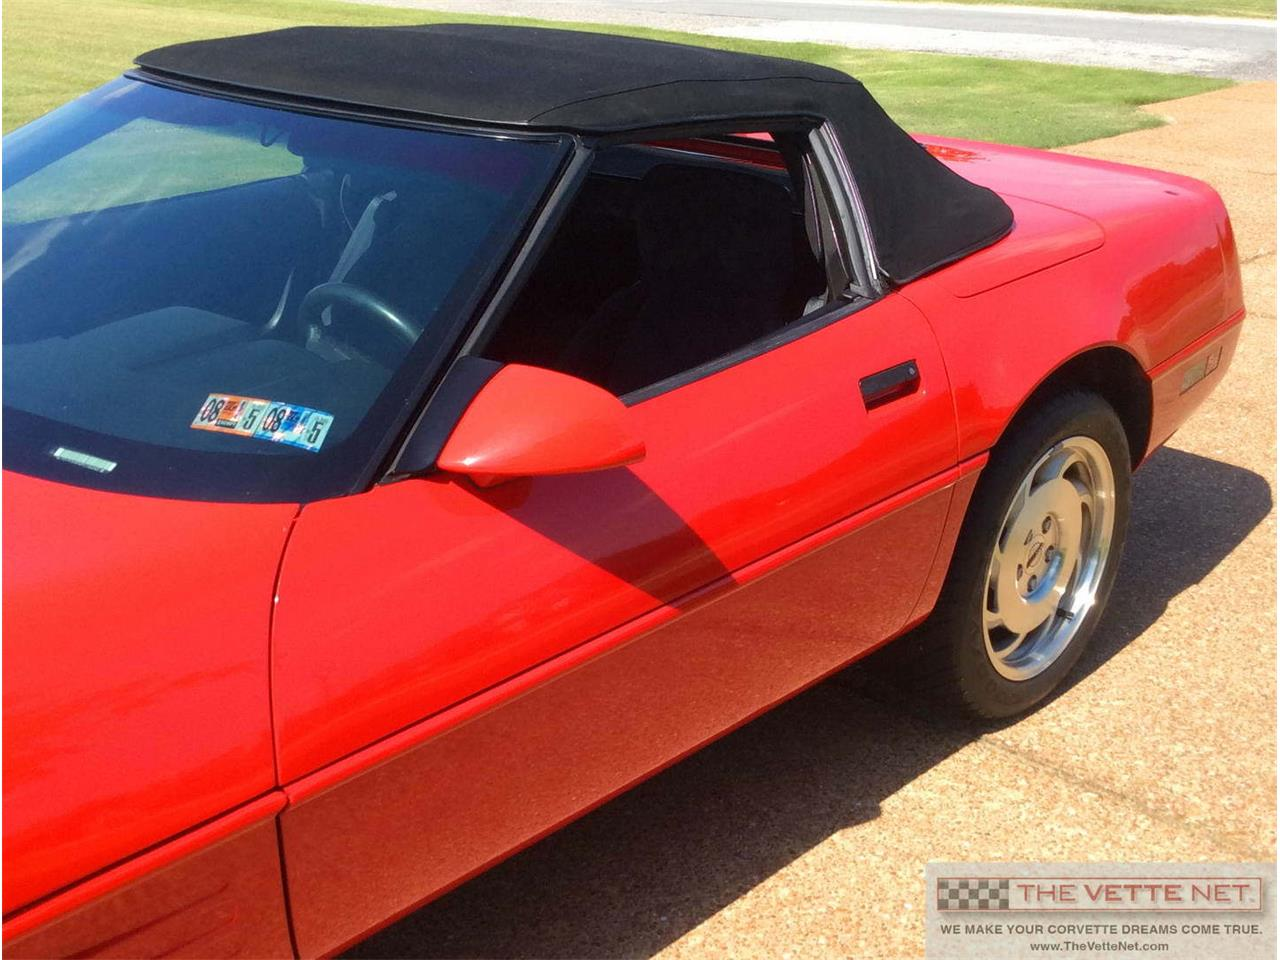 Large Picture of 1993 Corvette - $19,990.00 Offered by The Vette Net - LISB